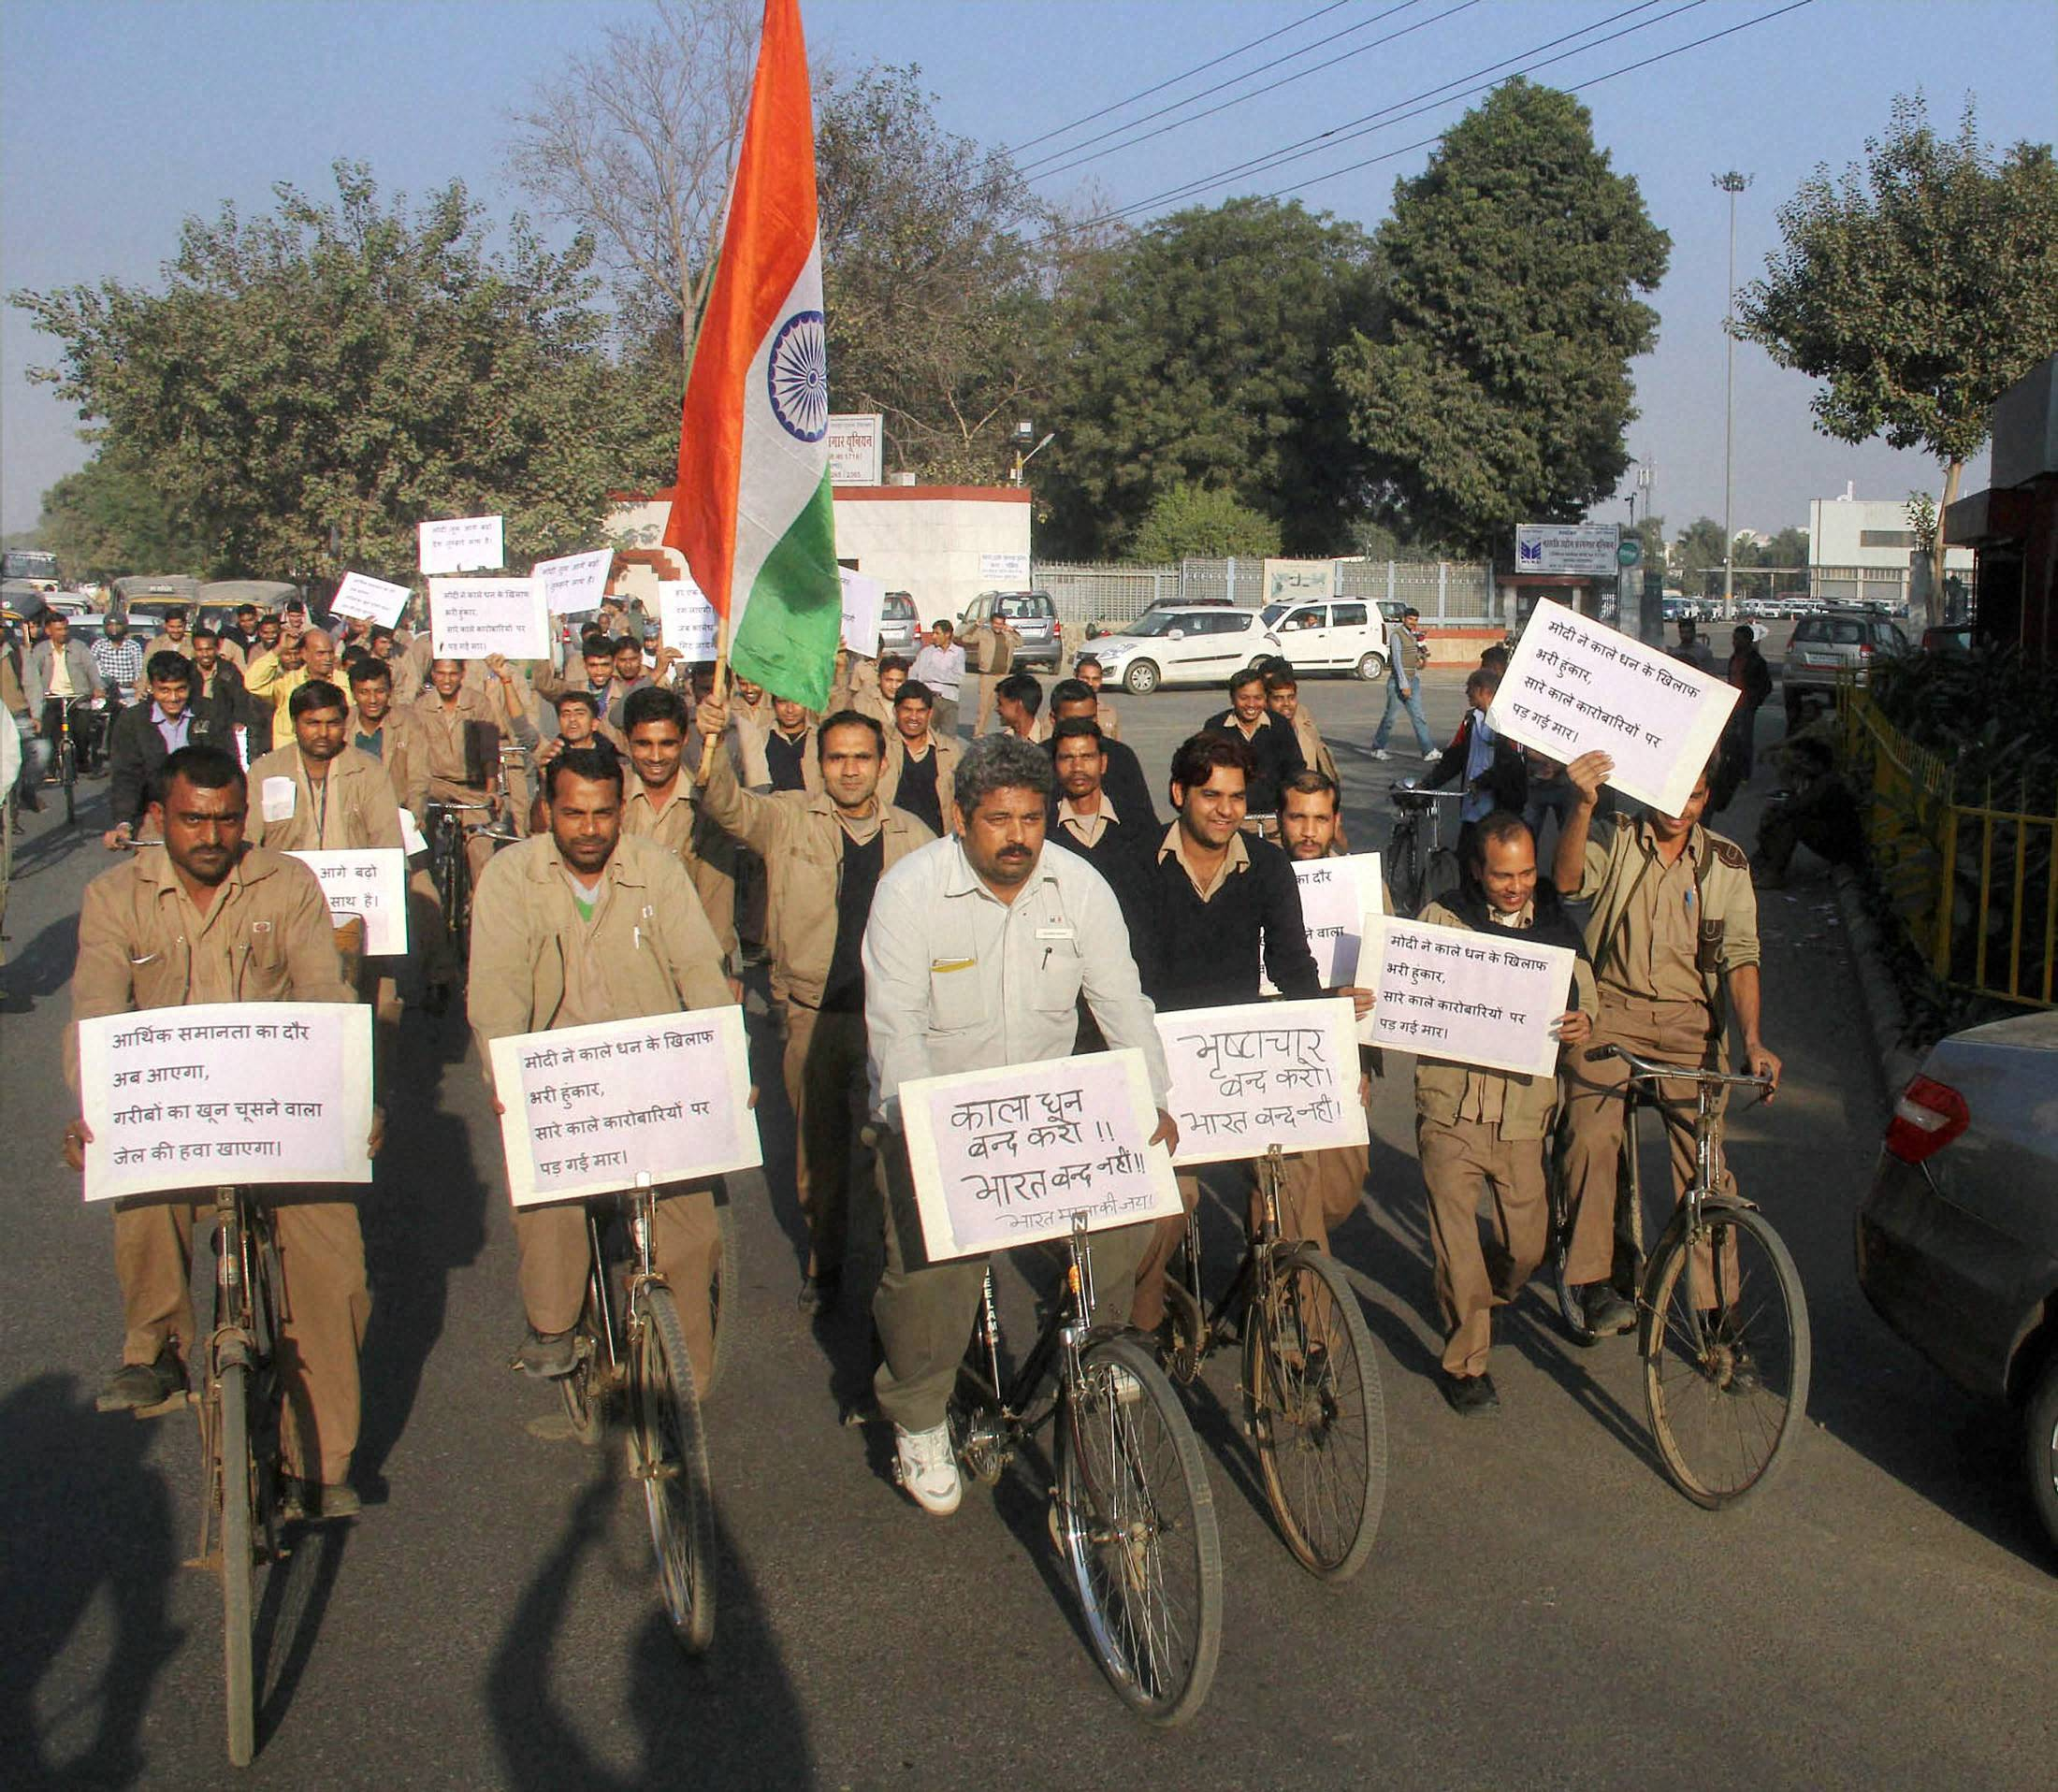 Gurugram : Workers of different unions including Maruti Udyog Kamgar Union arrange a support cycle procession for demonetisation in Gurugram. PTI Photo